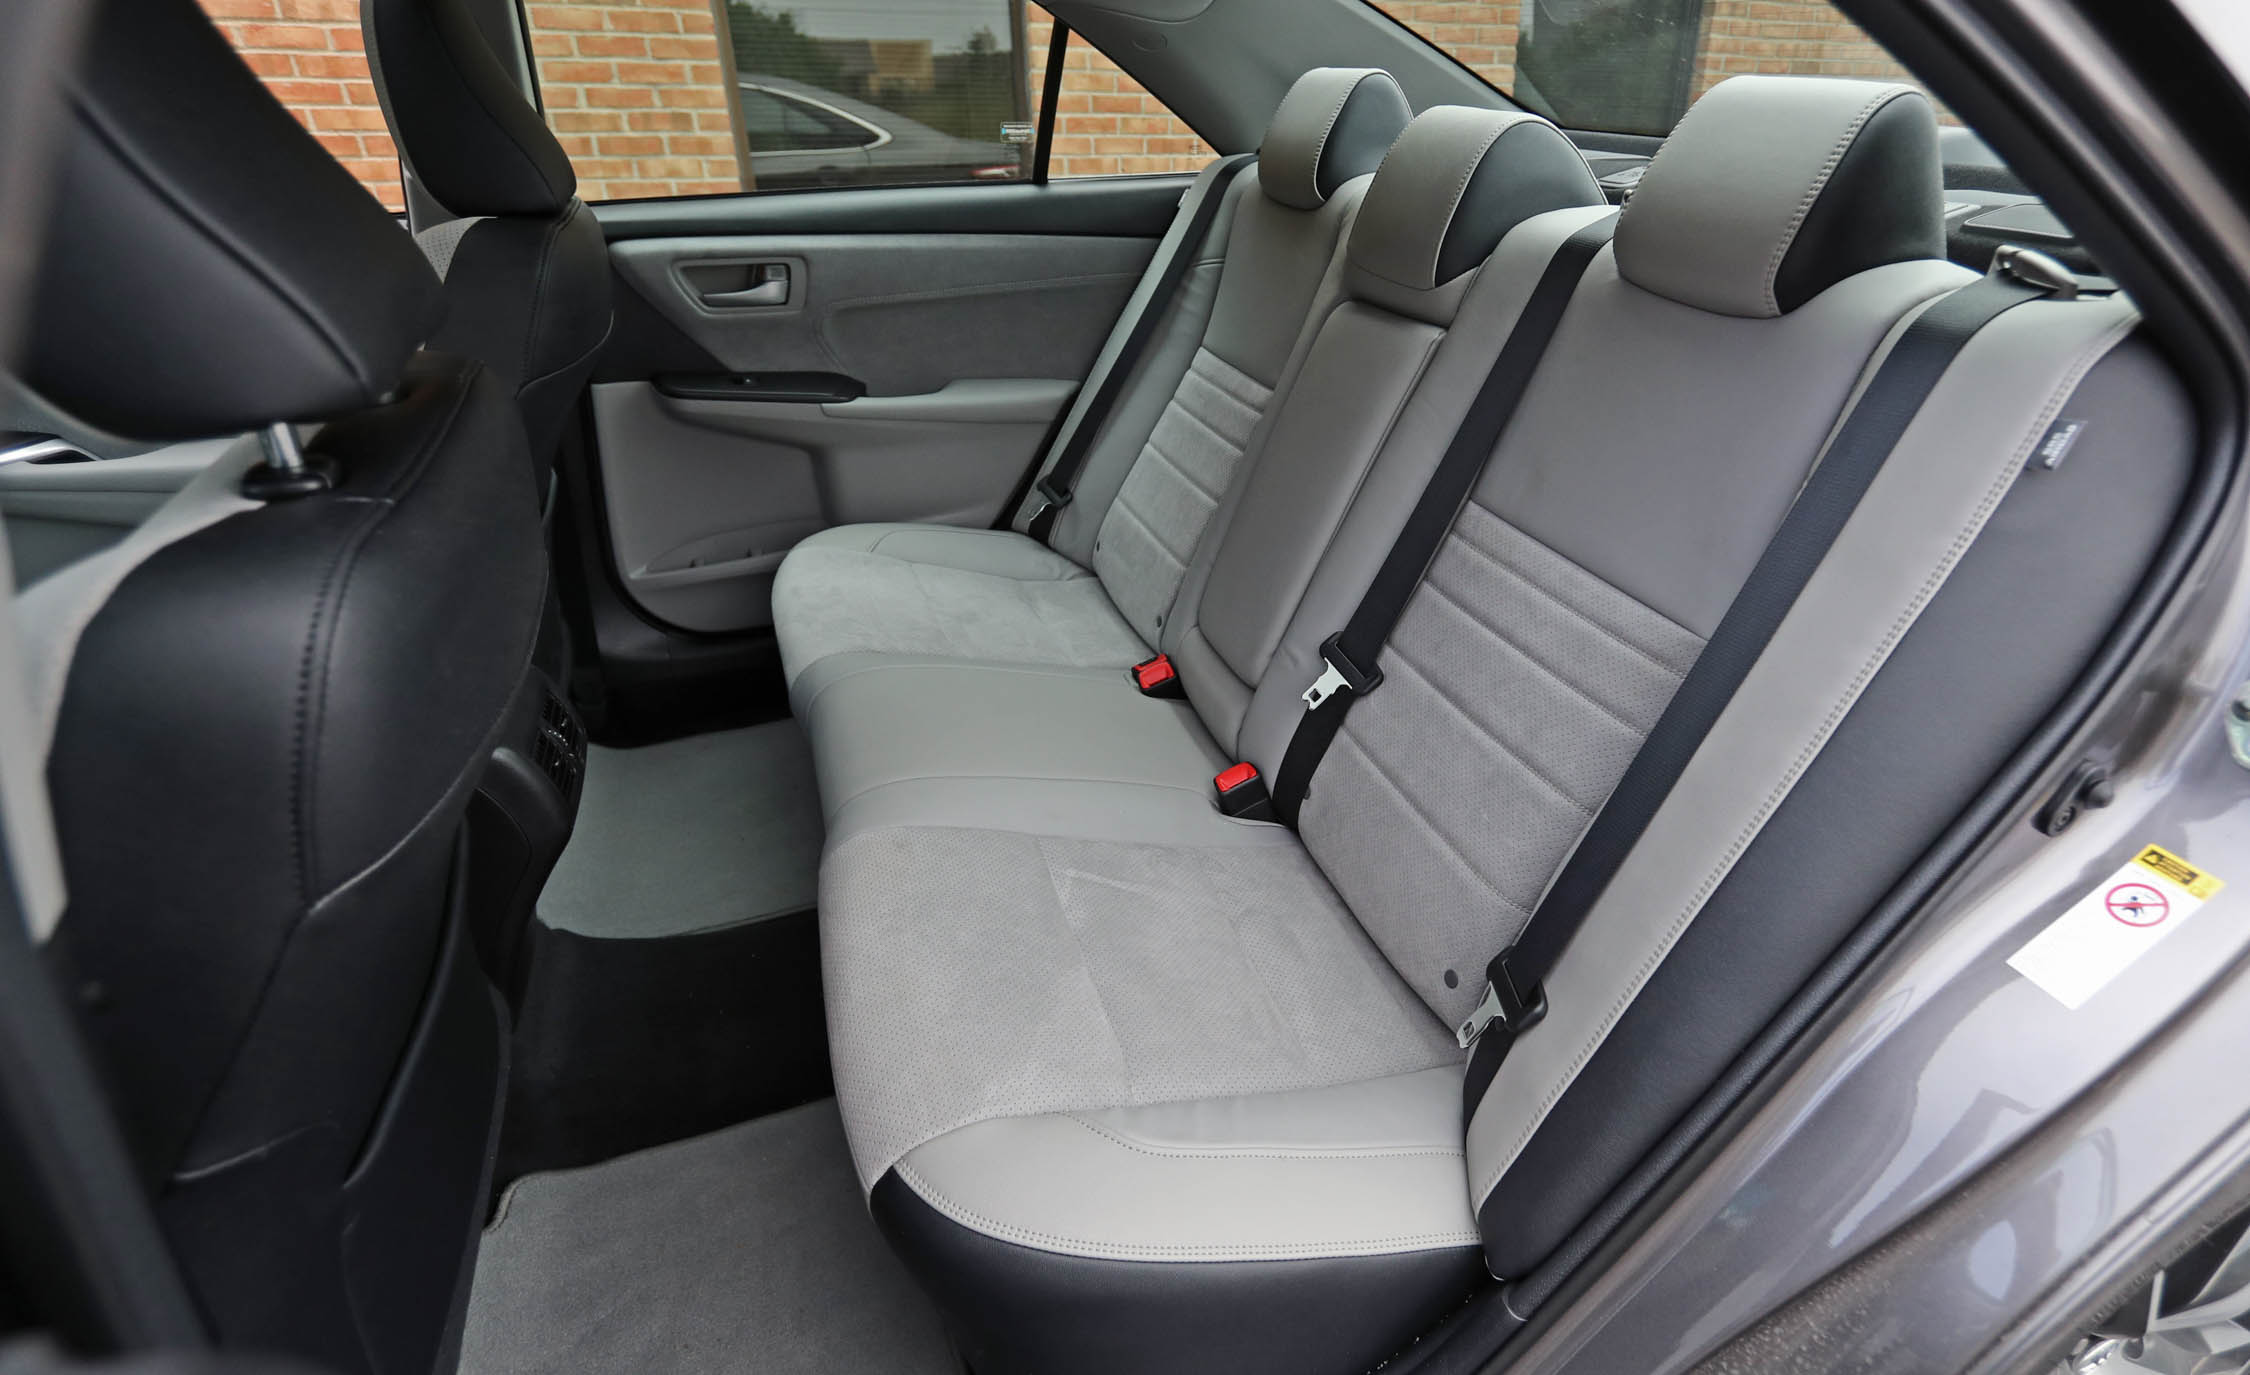 2017 Toyota Camry Interior Seats Rear (Photo 21 of 37)